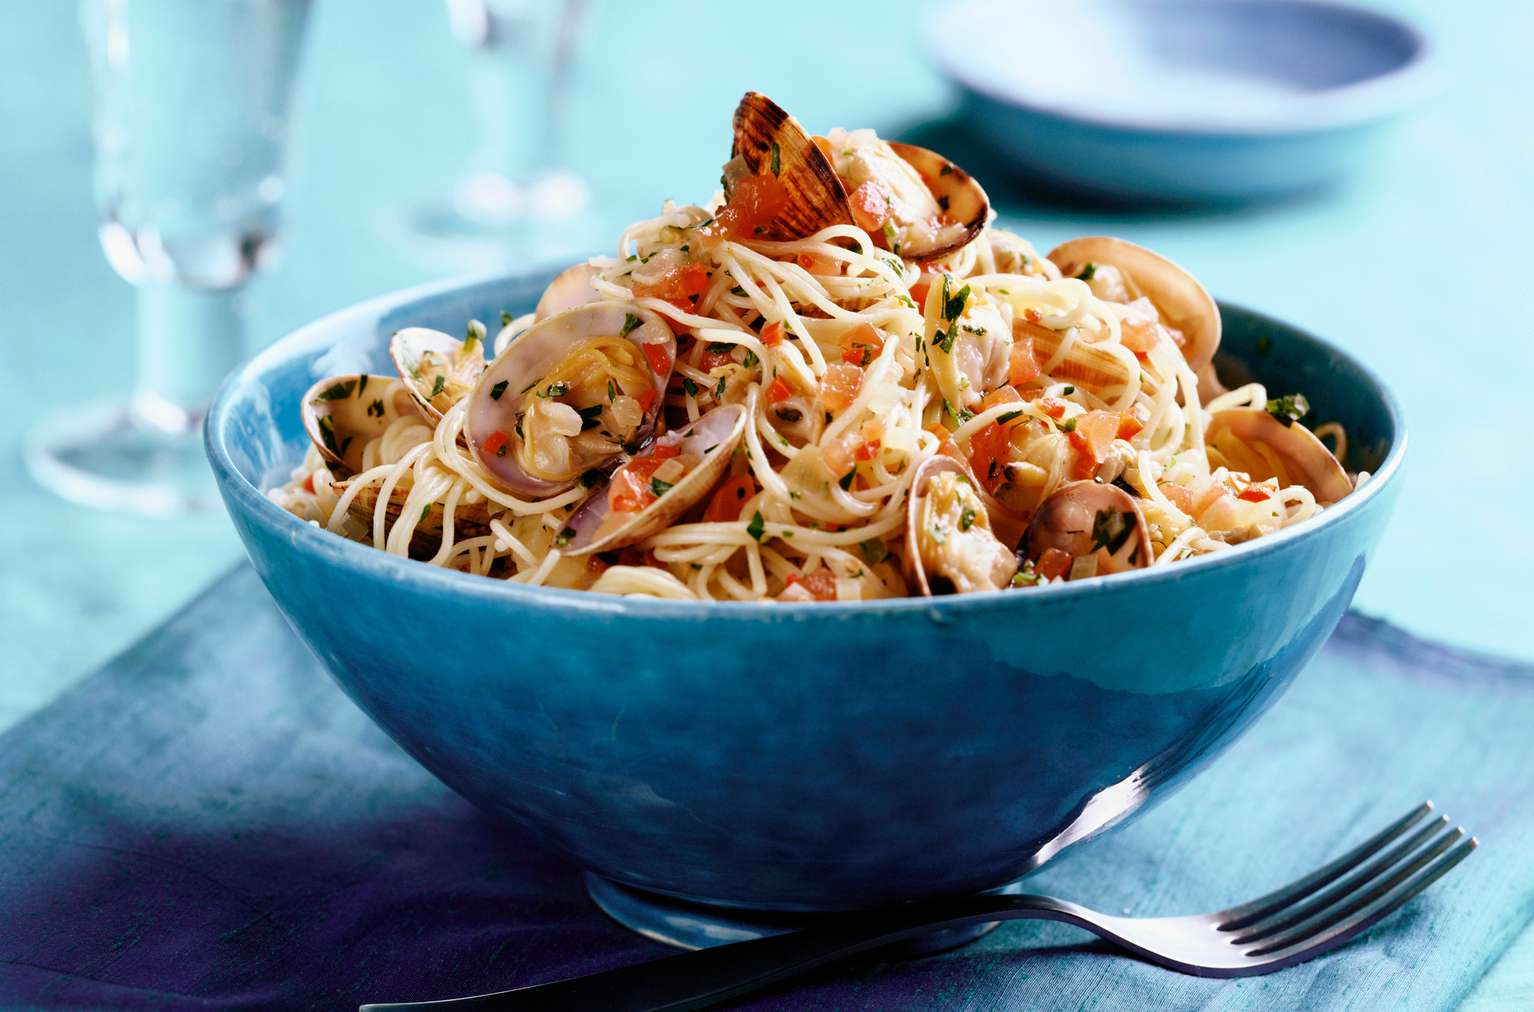 Pasta With Shrimp, Squid, Clams, and Mussels